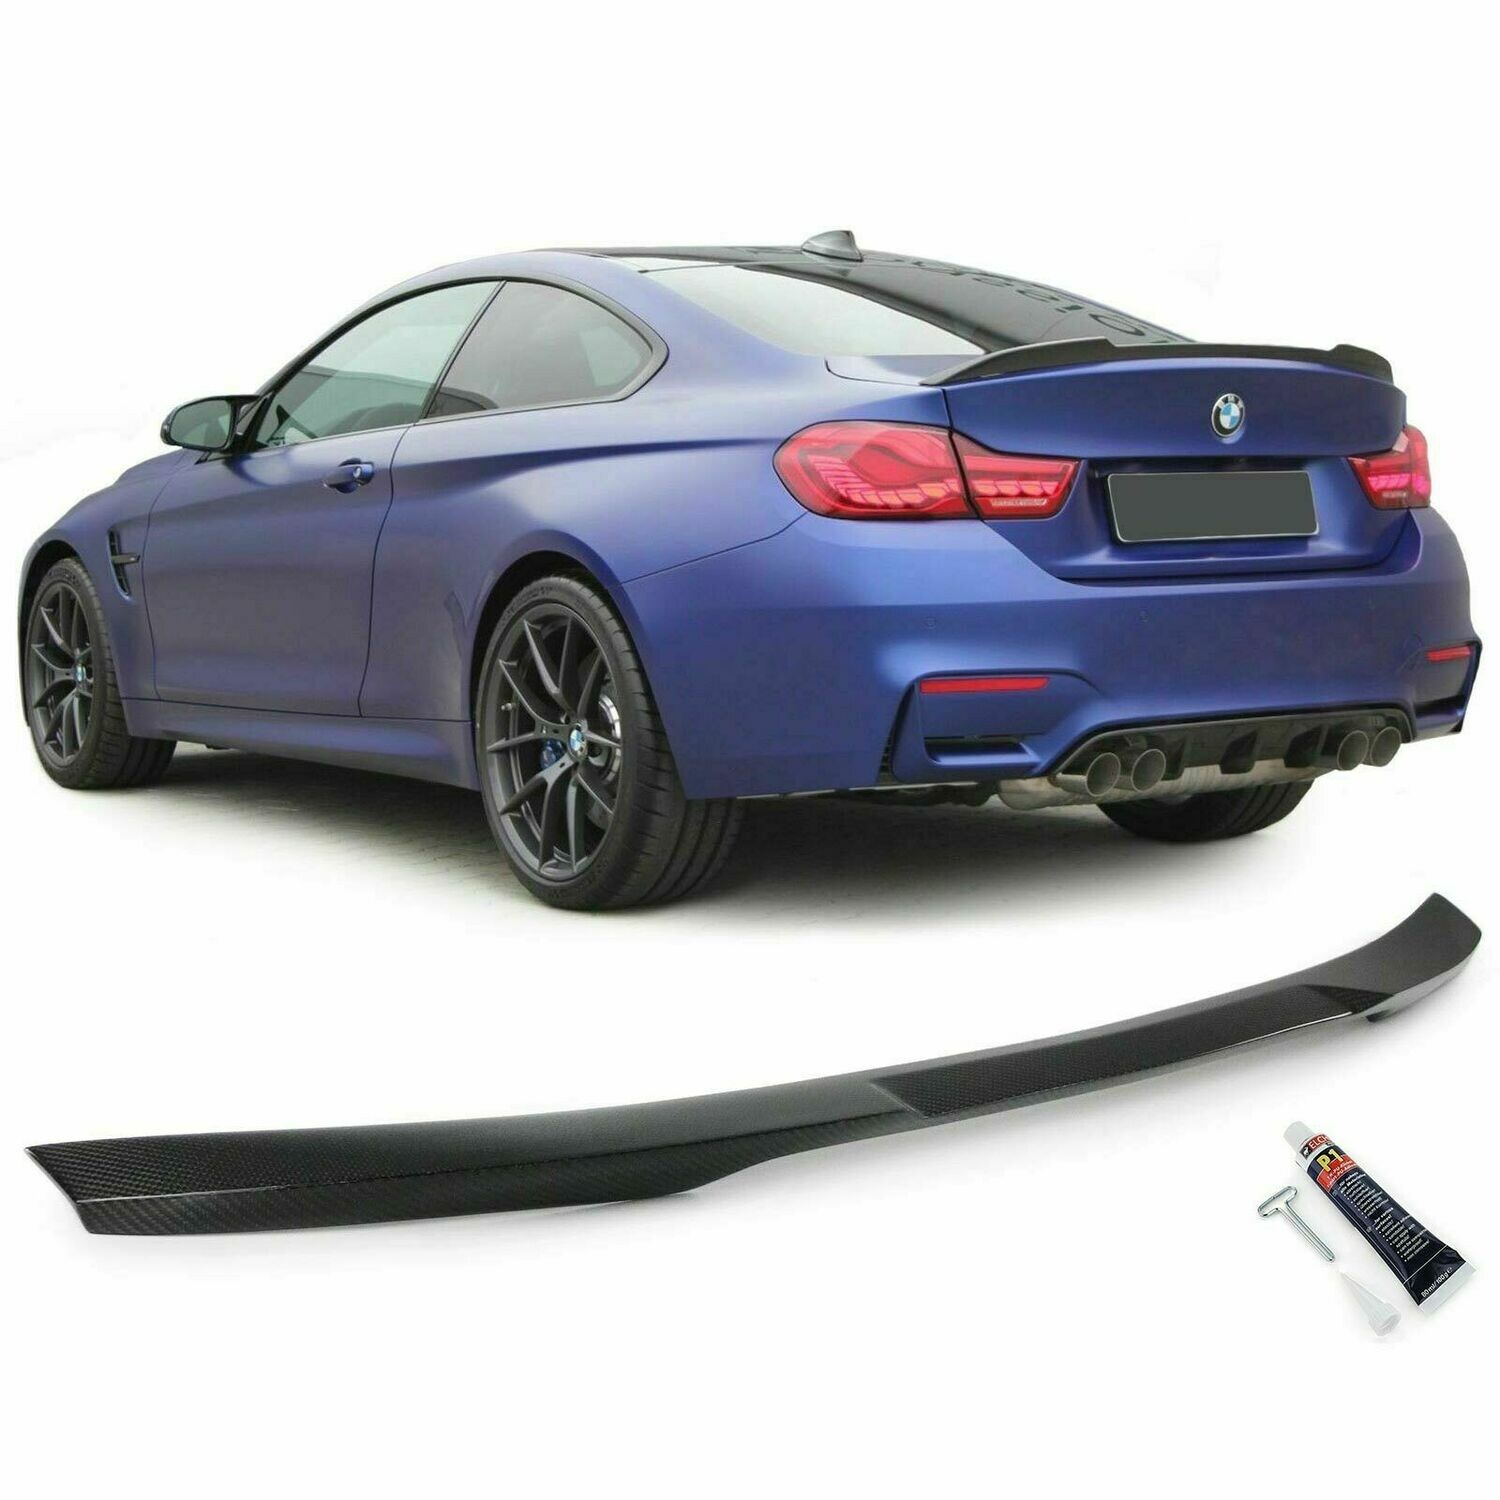 Rear boot Carbon spoiler for BMW F32 2013 Series 4 Sport Look